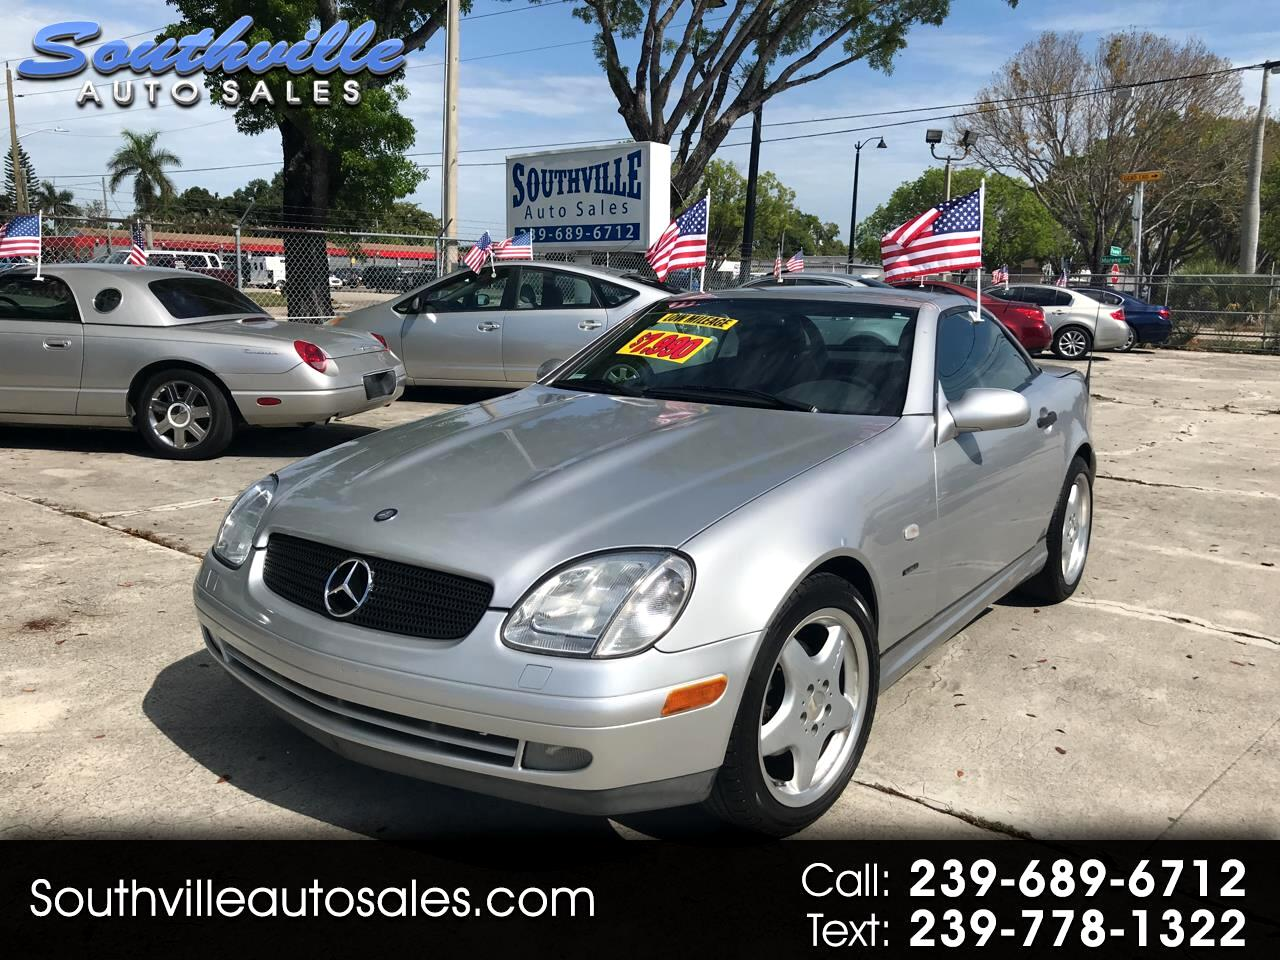 Mercedes-Benz SLK-Class Kompressor Roadster 2.3L Sp Edition 1999